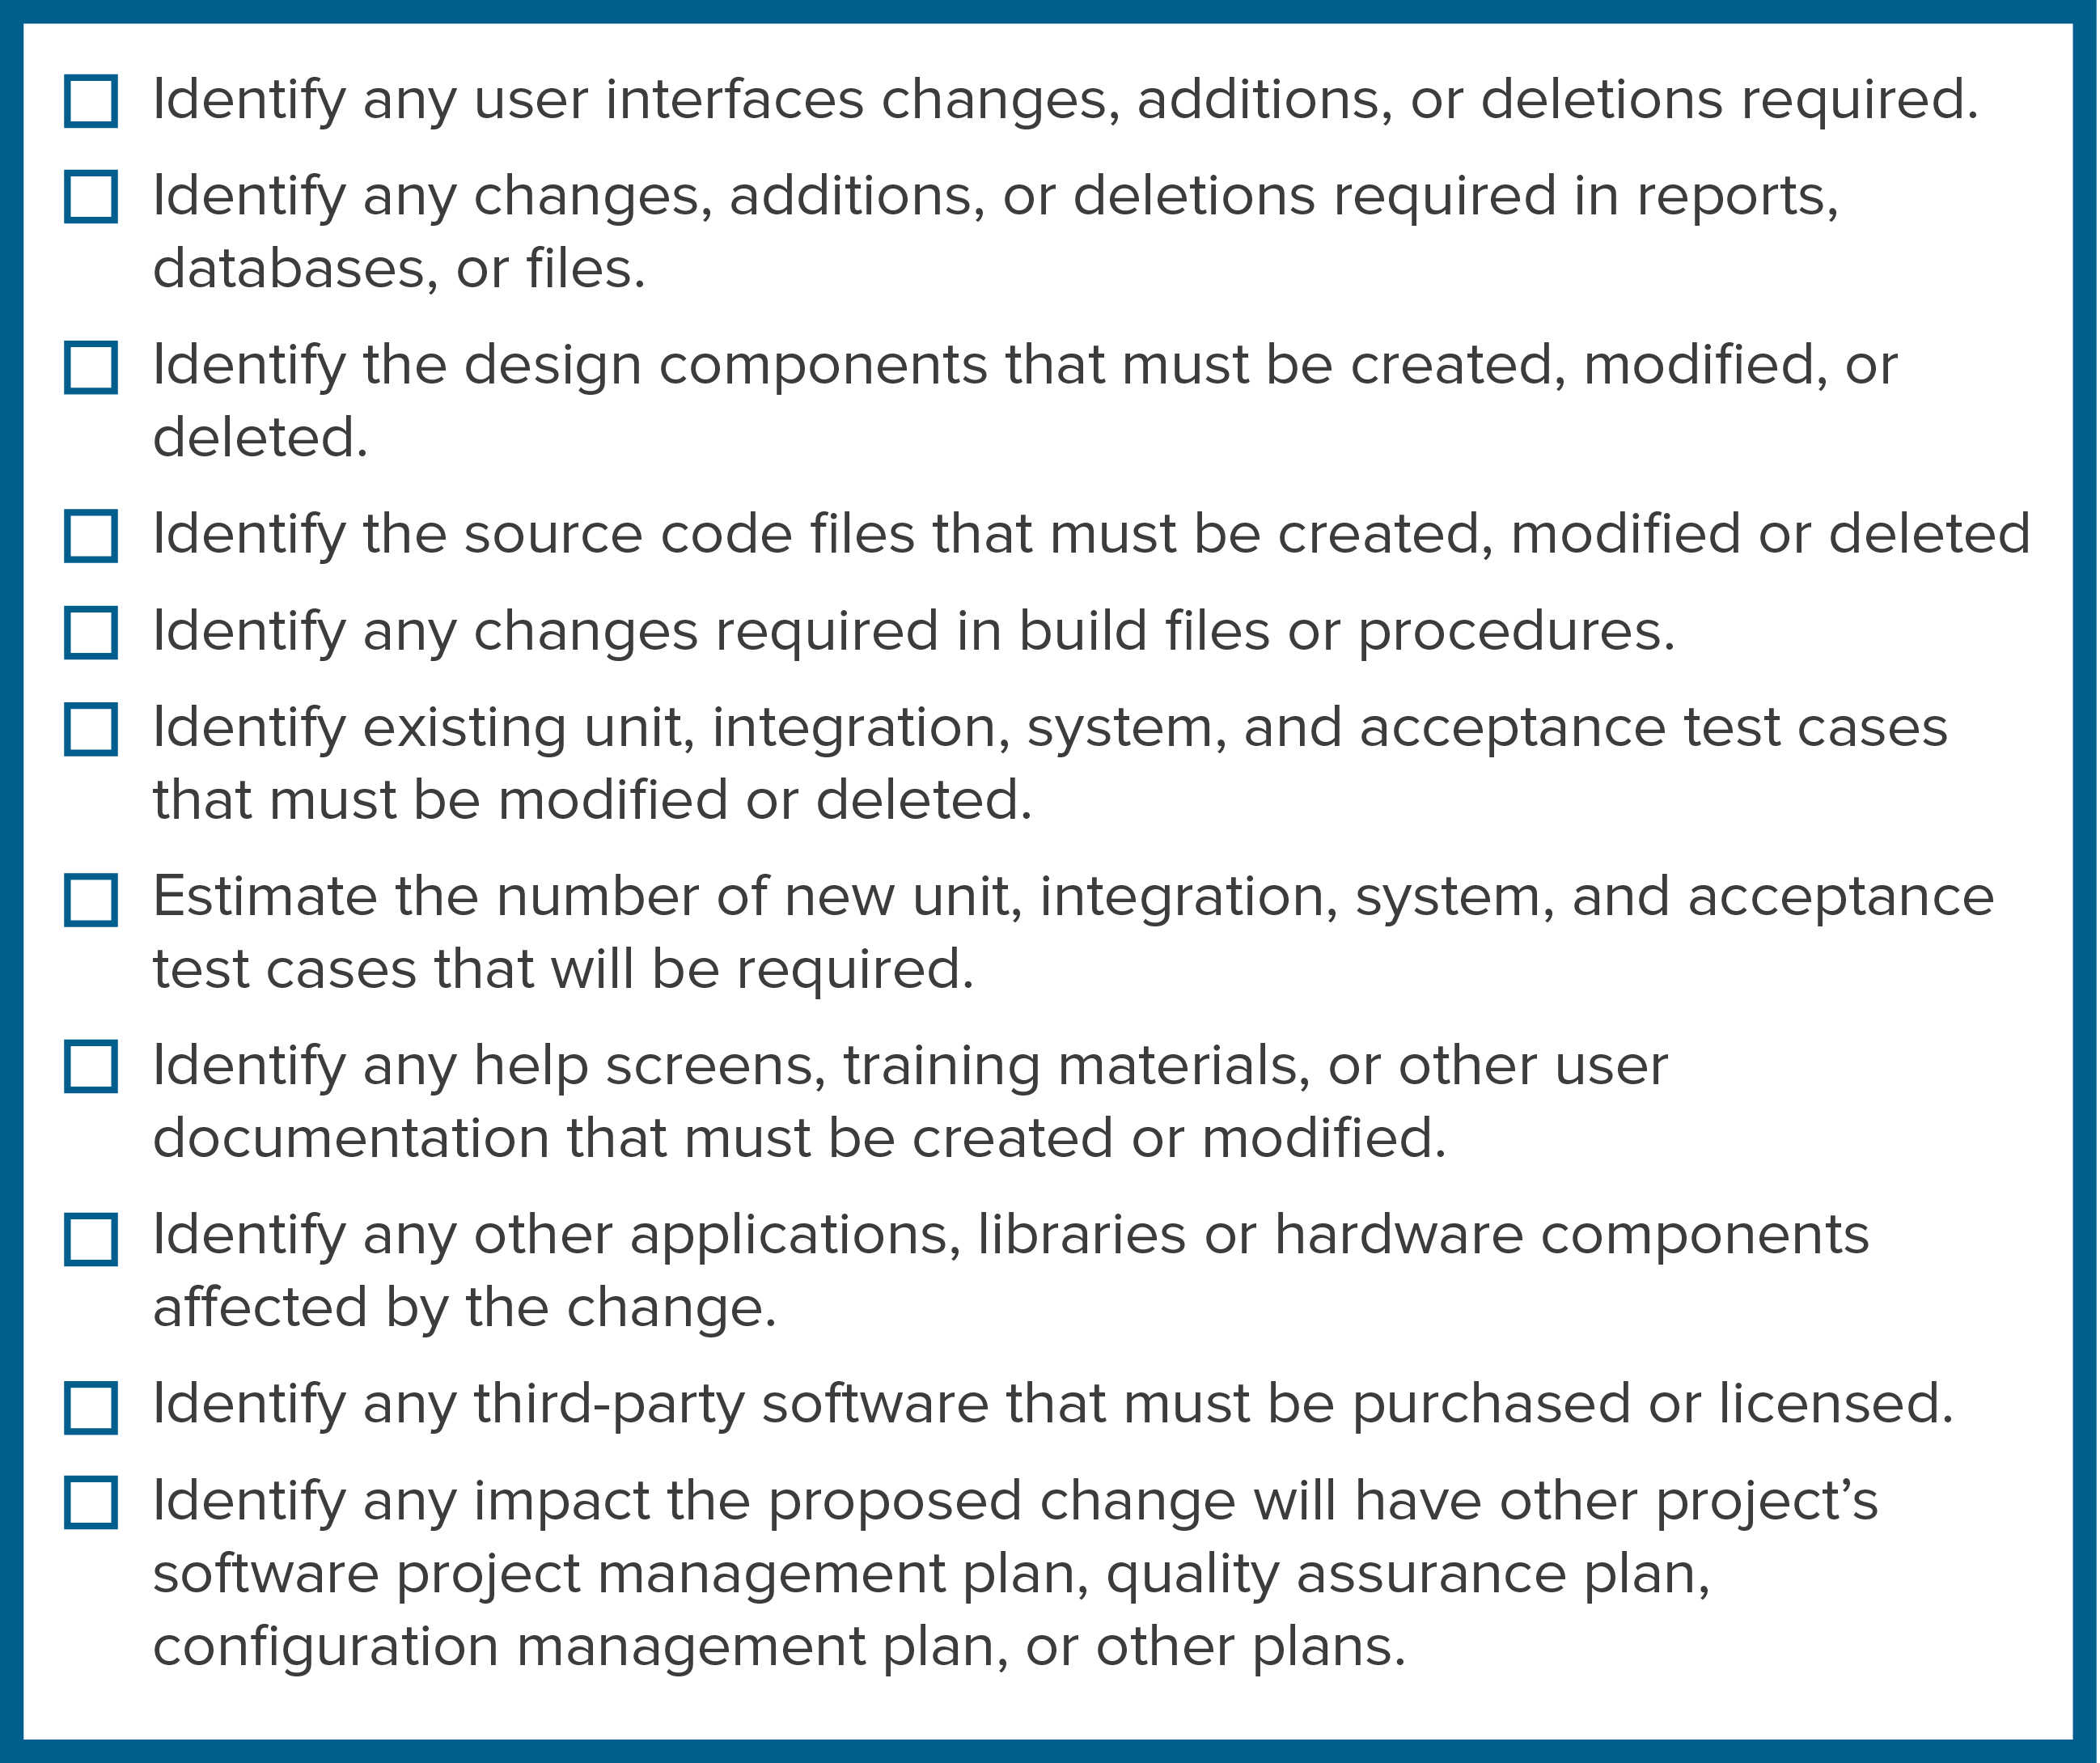 Checklist of possible software elements affected by a proposed change.